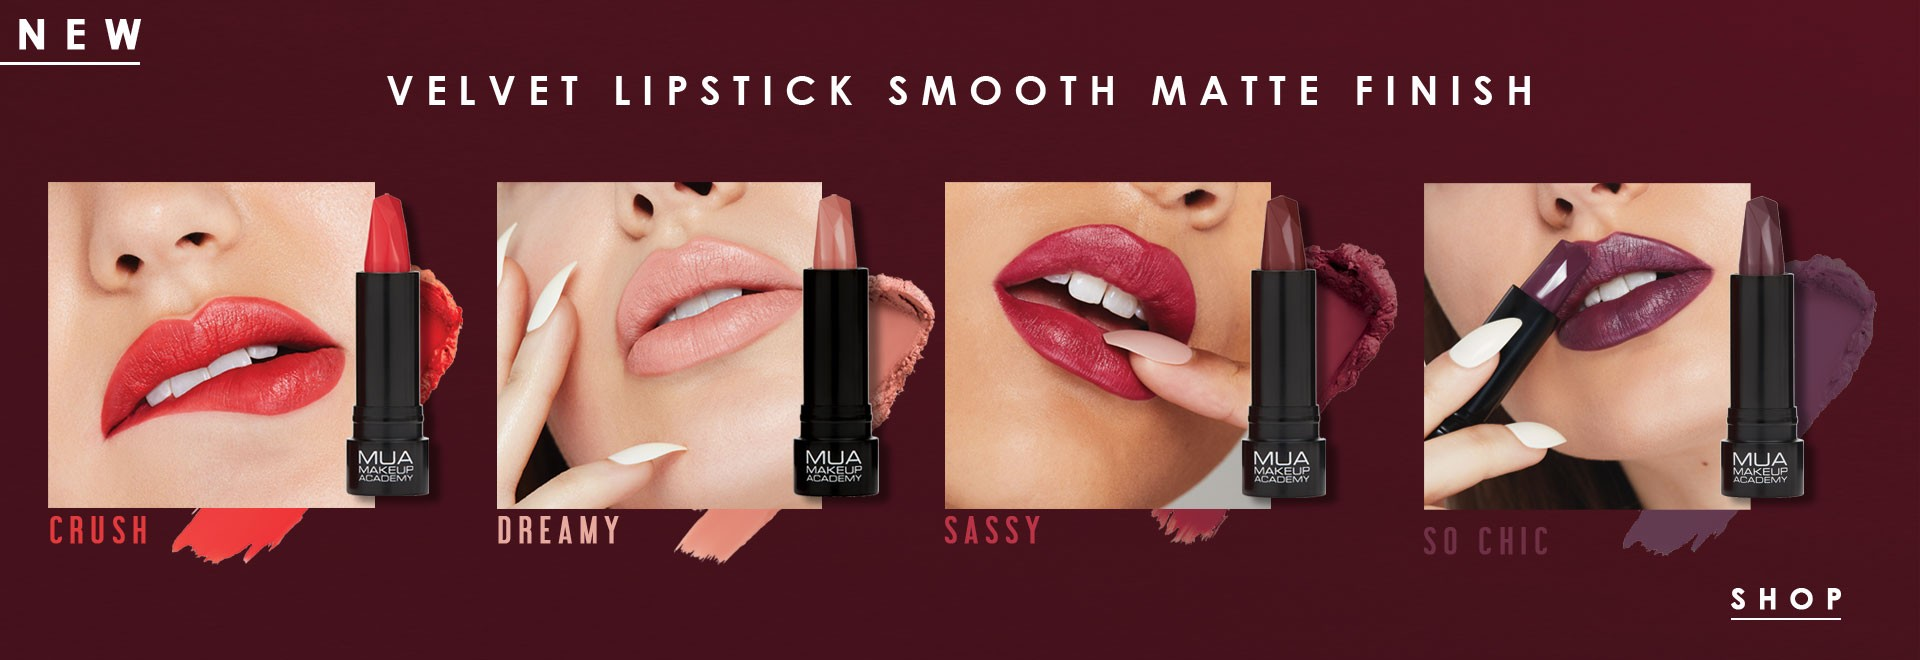 MUA VELVET LIPSTICK SMOOTH MATTE FINISH